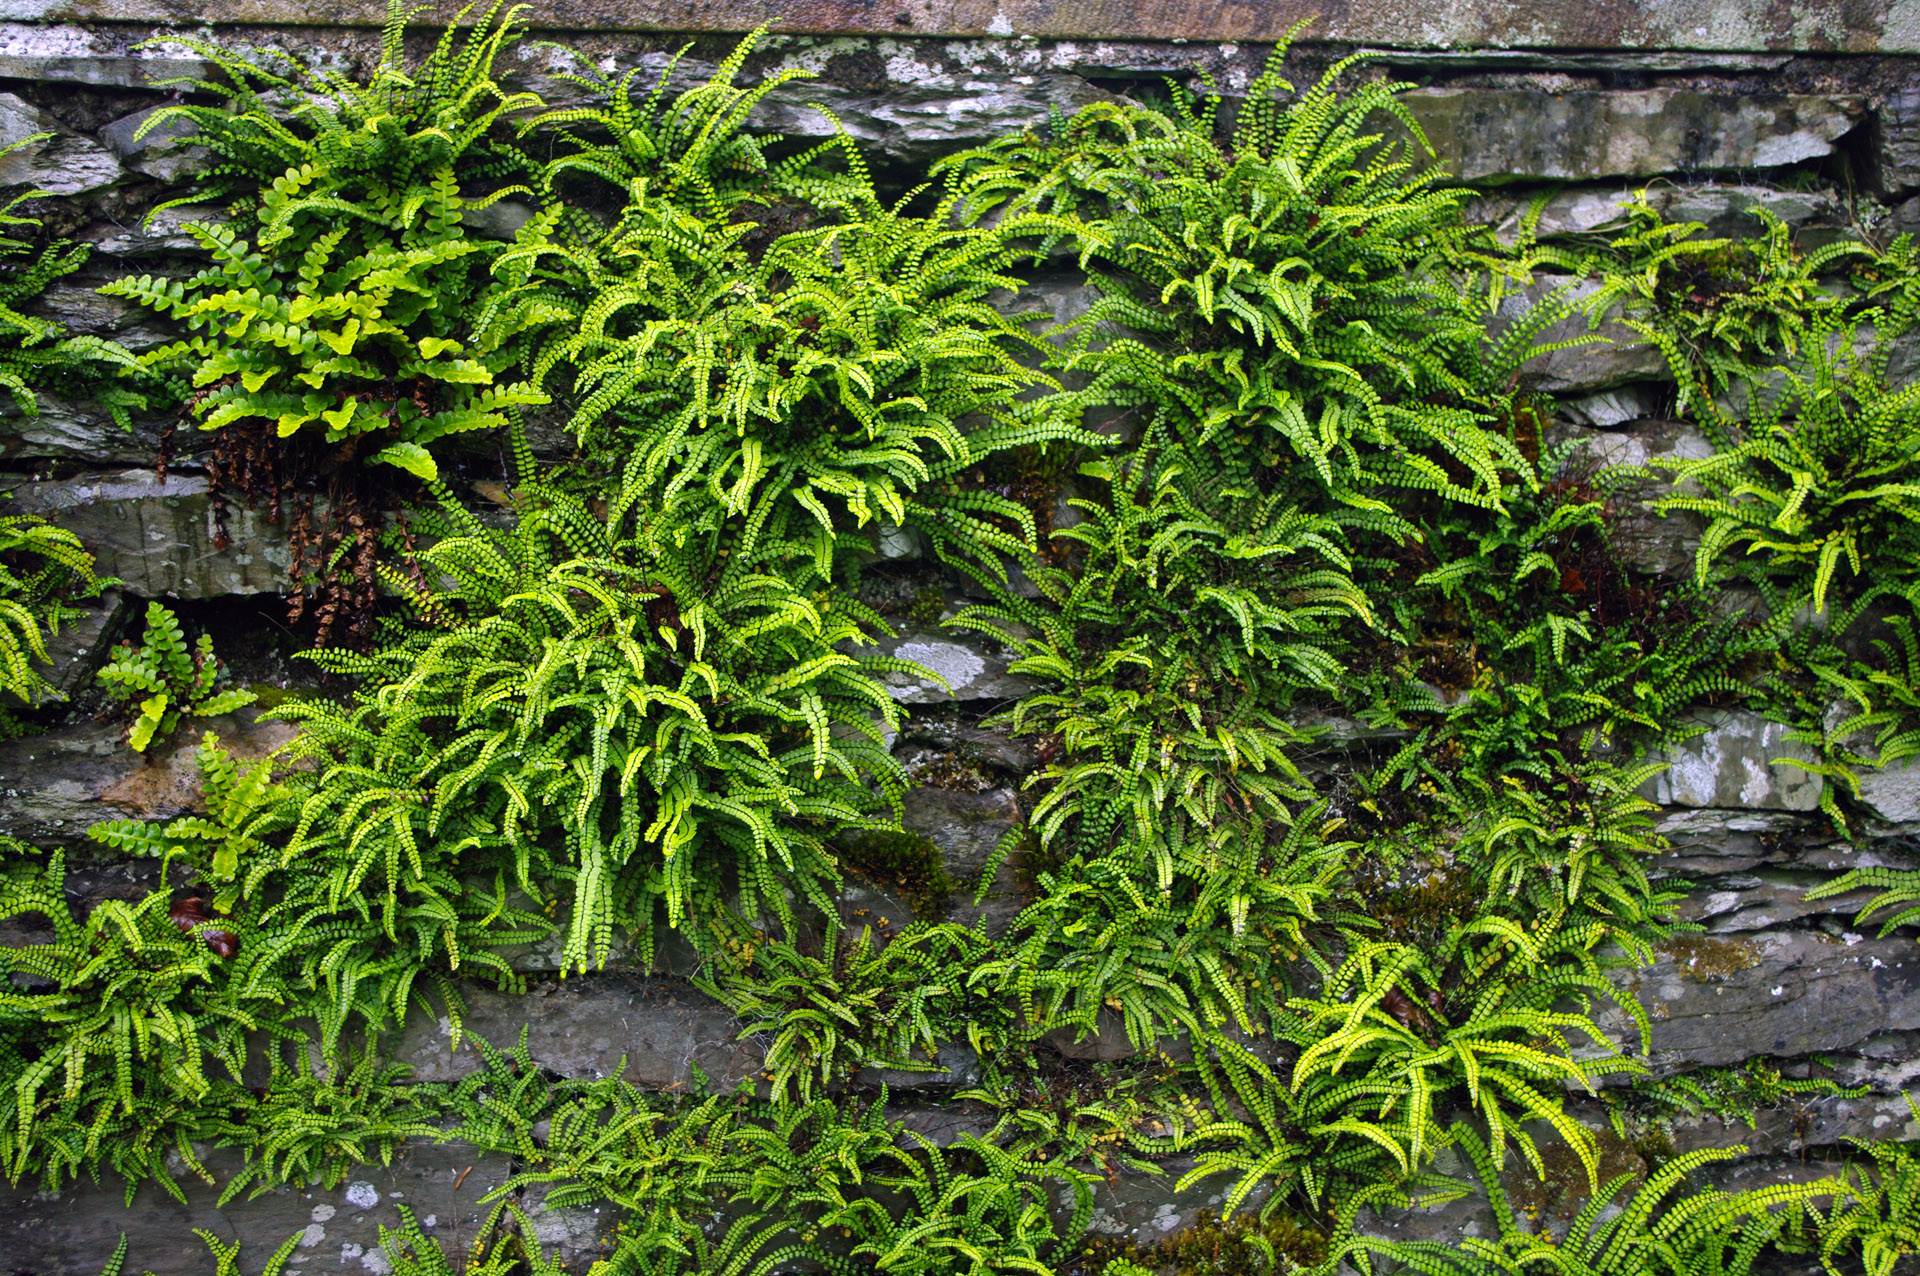 lake district wettest parts UK ferns traditional dry stone wall